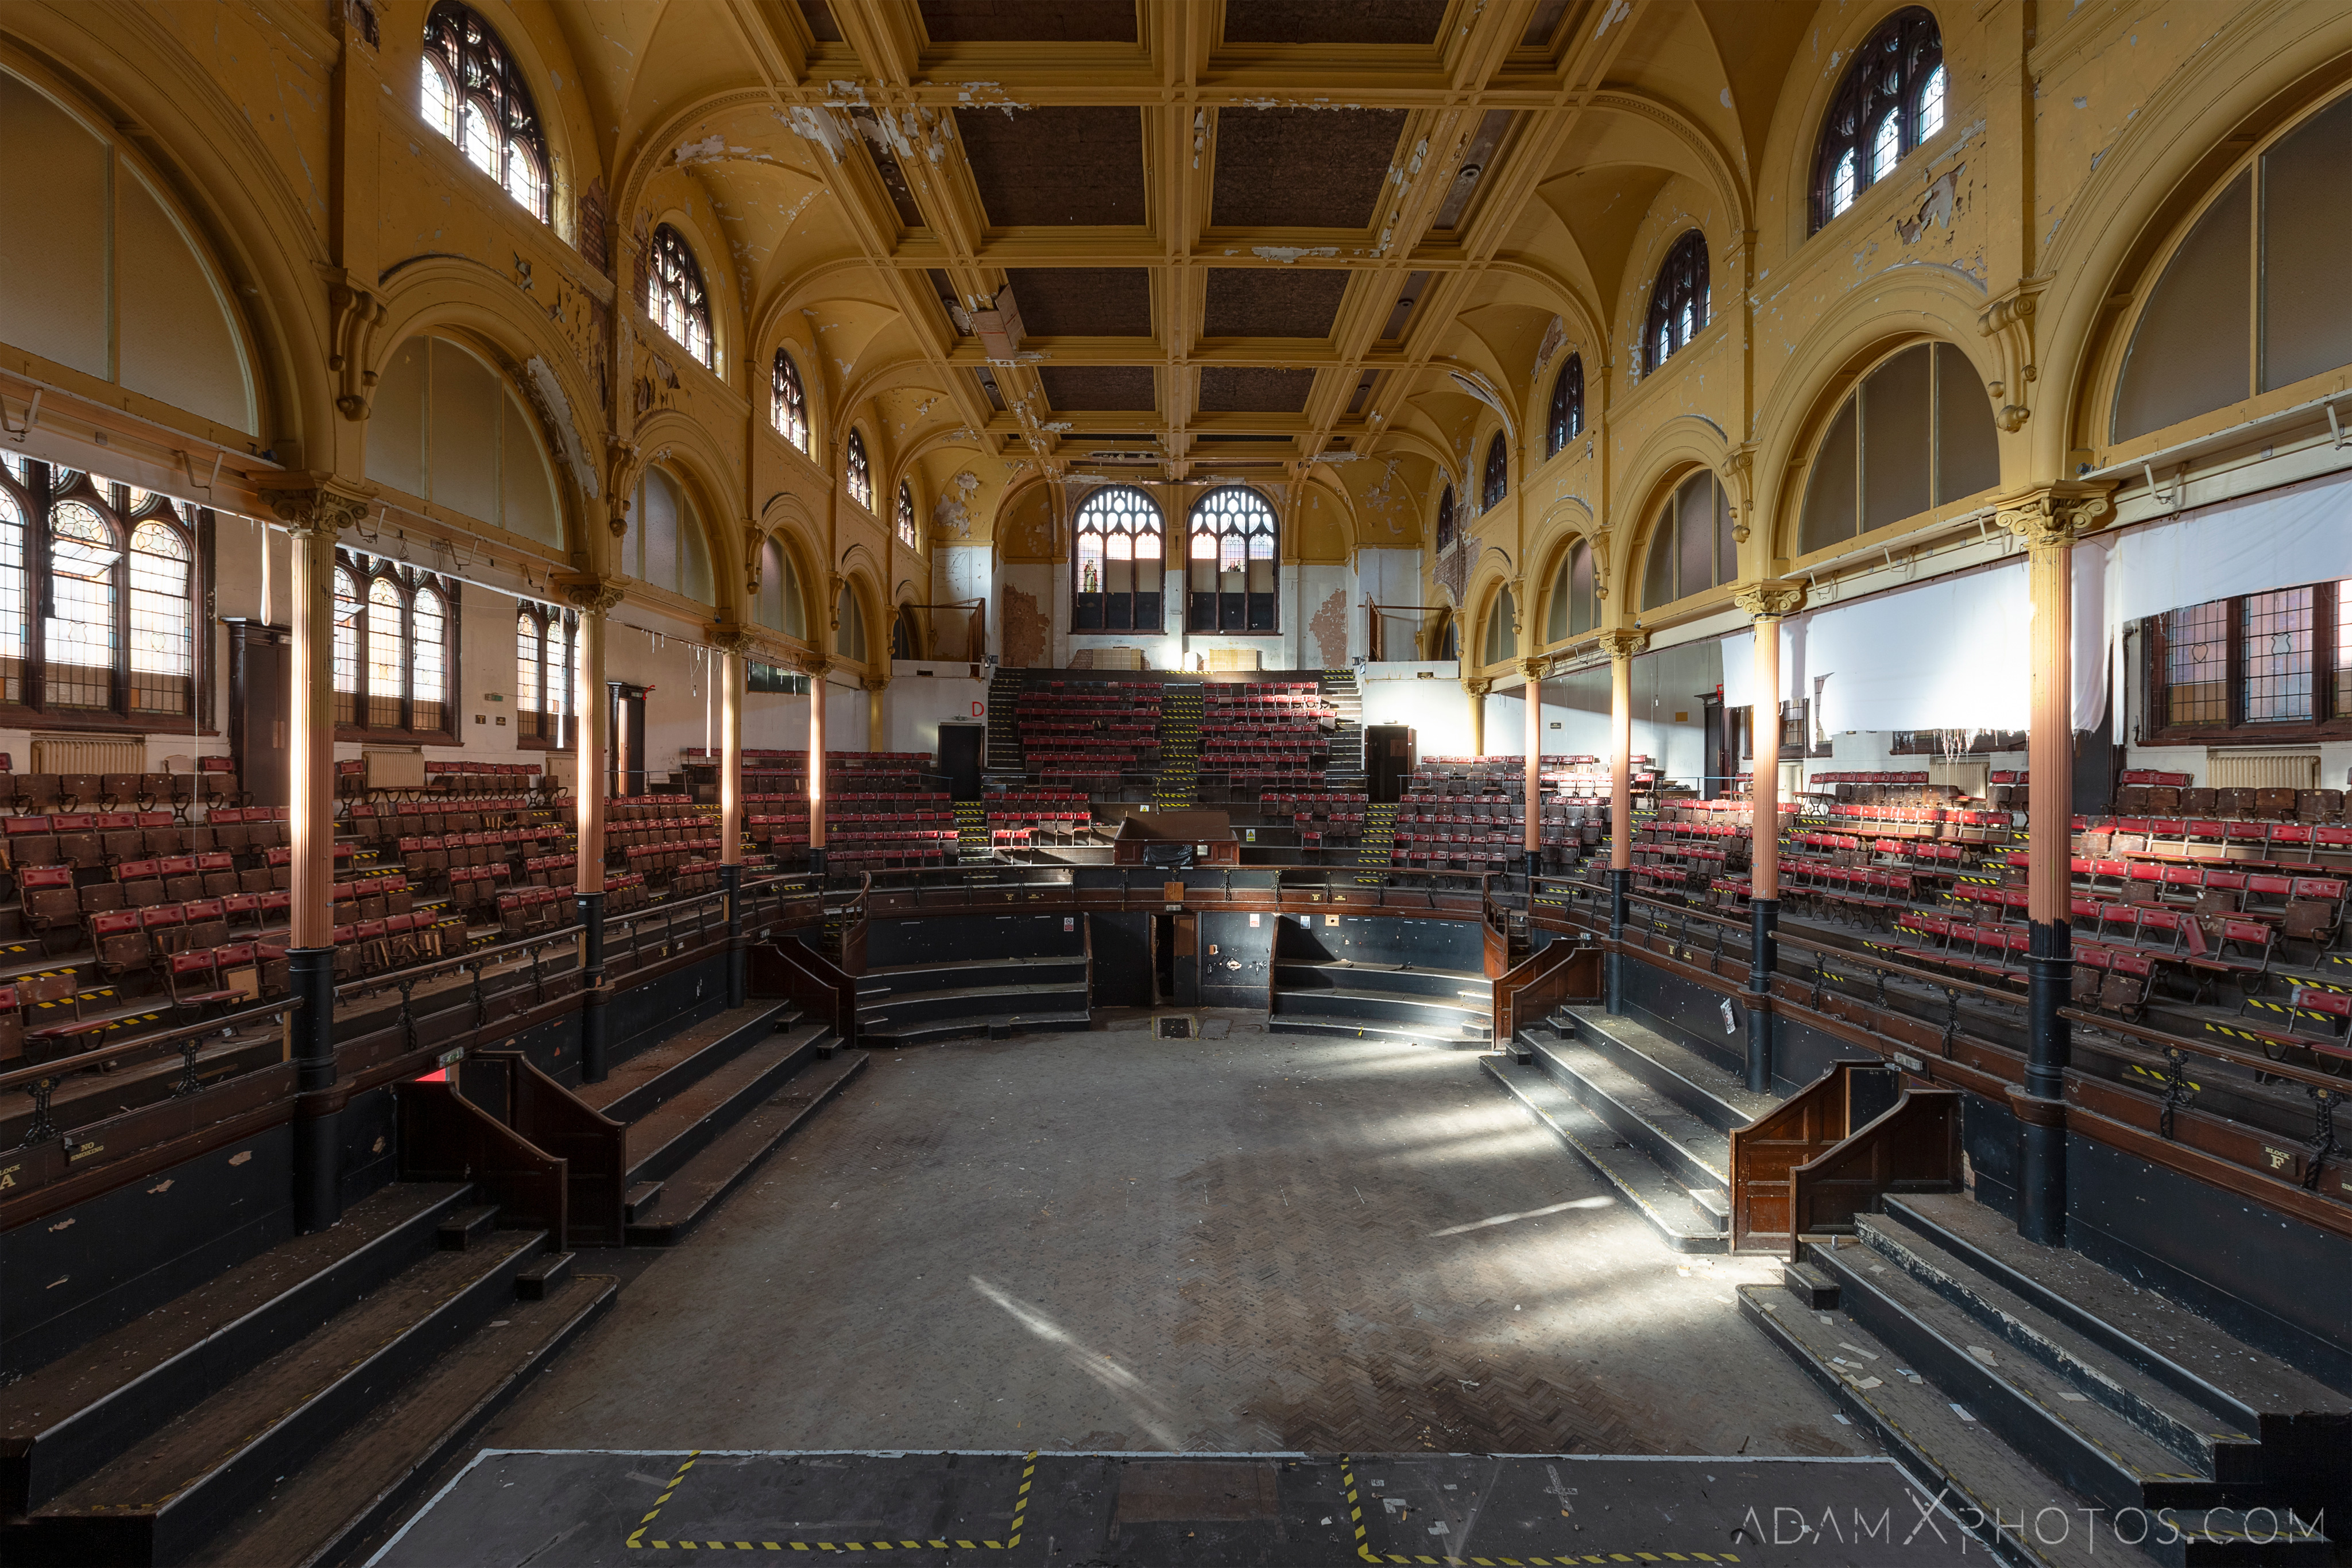 Main Hall from the stage organ Birmingham Methodist Central Hall Q Club Adam X Urbex Urban Exploration Access 2018 Abandoned decay lost forgotten derelict location creepy haunting eerie